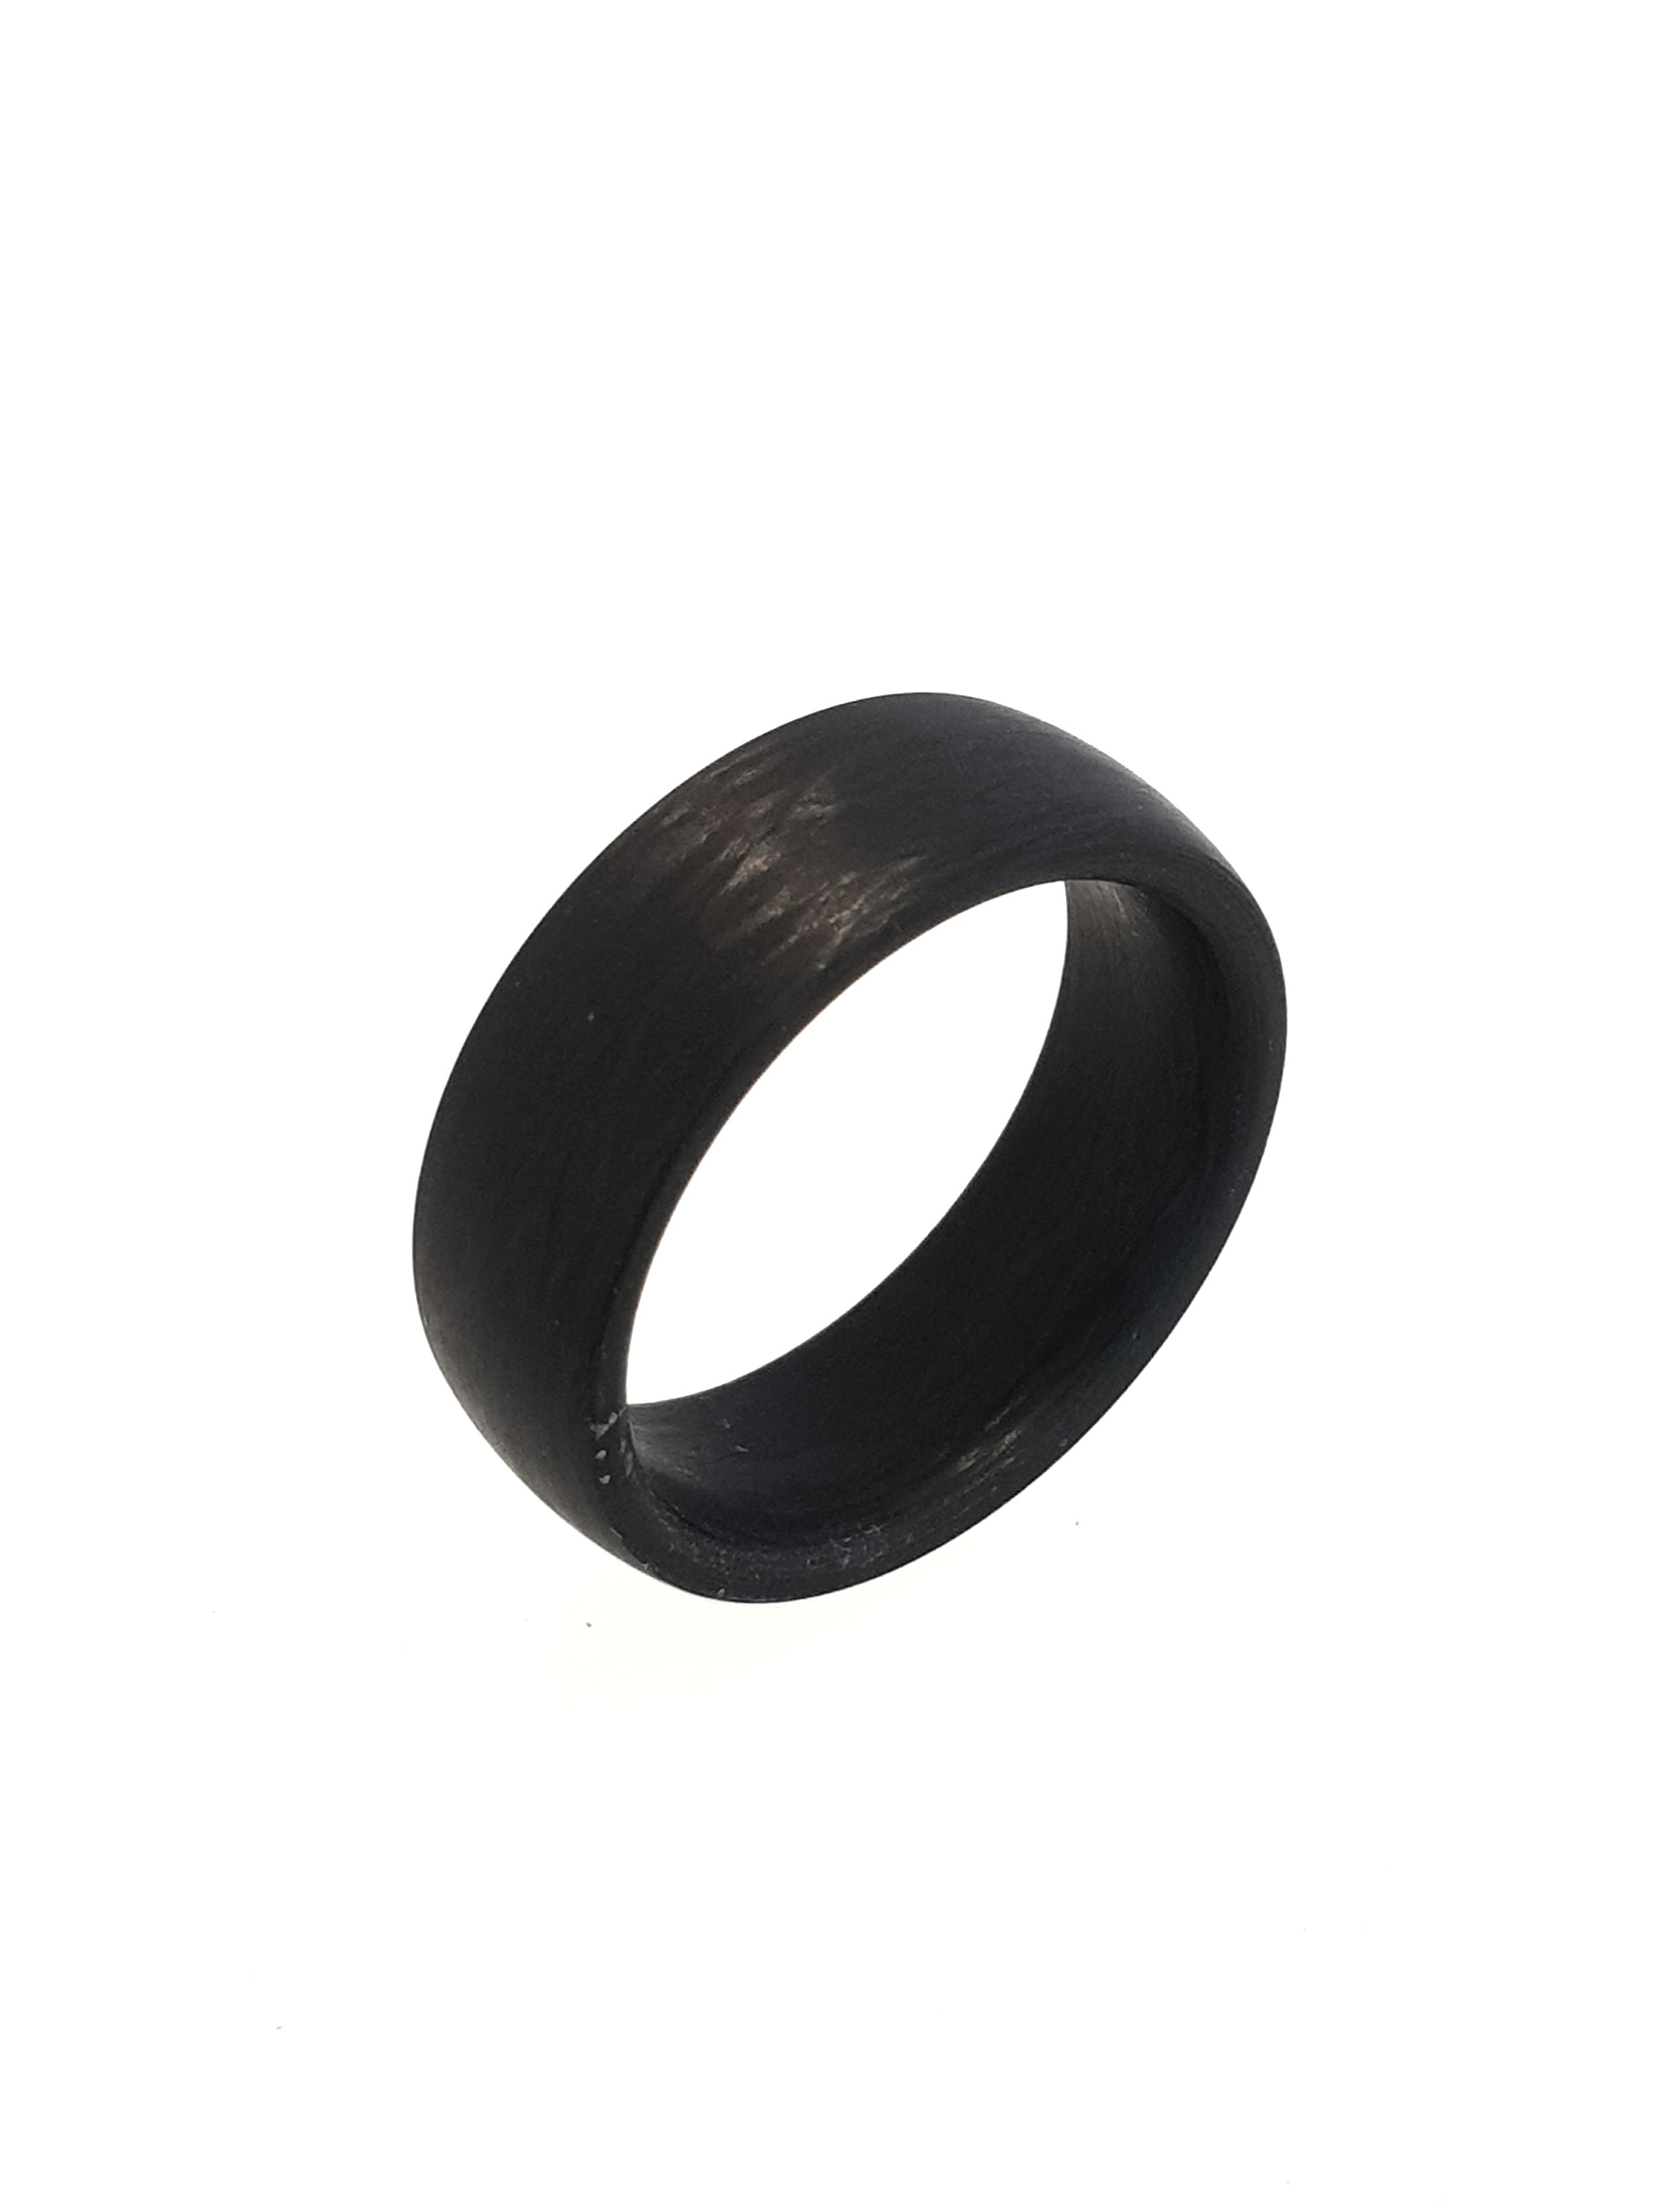 Carbon Fibre Ring, 8mm    Titan Factory (Model: 59289/002/000/N000)   Current Stock Size: Y 1/2  Stock Code: E9841  £80